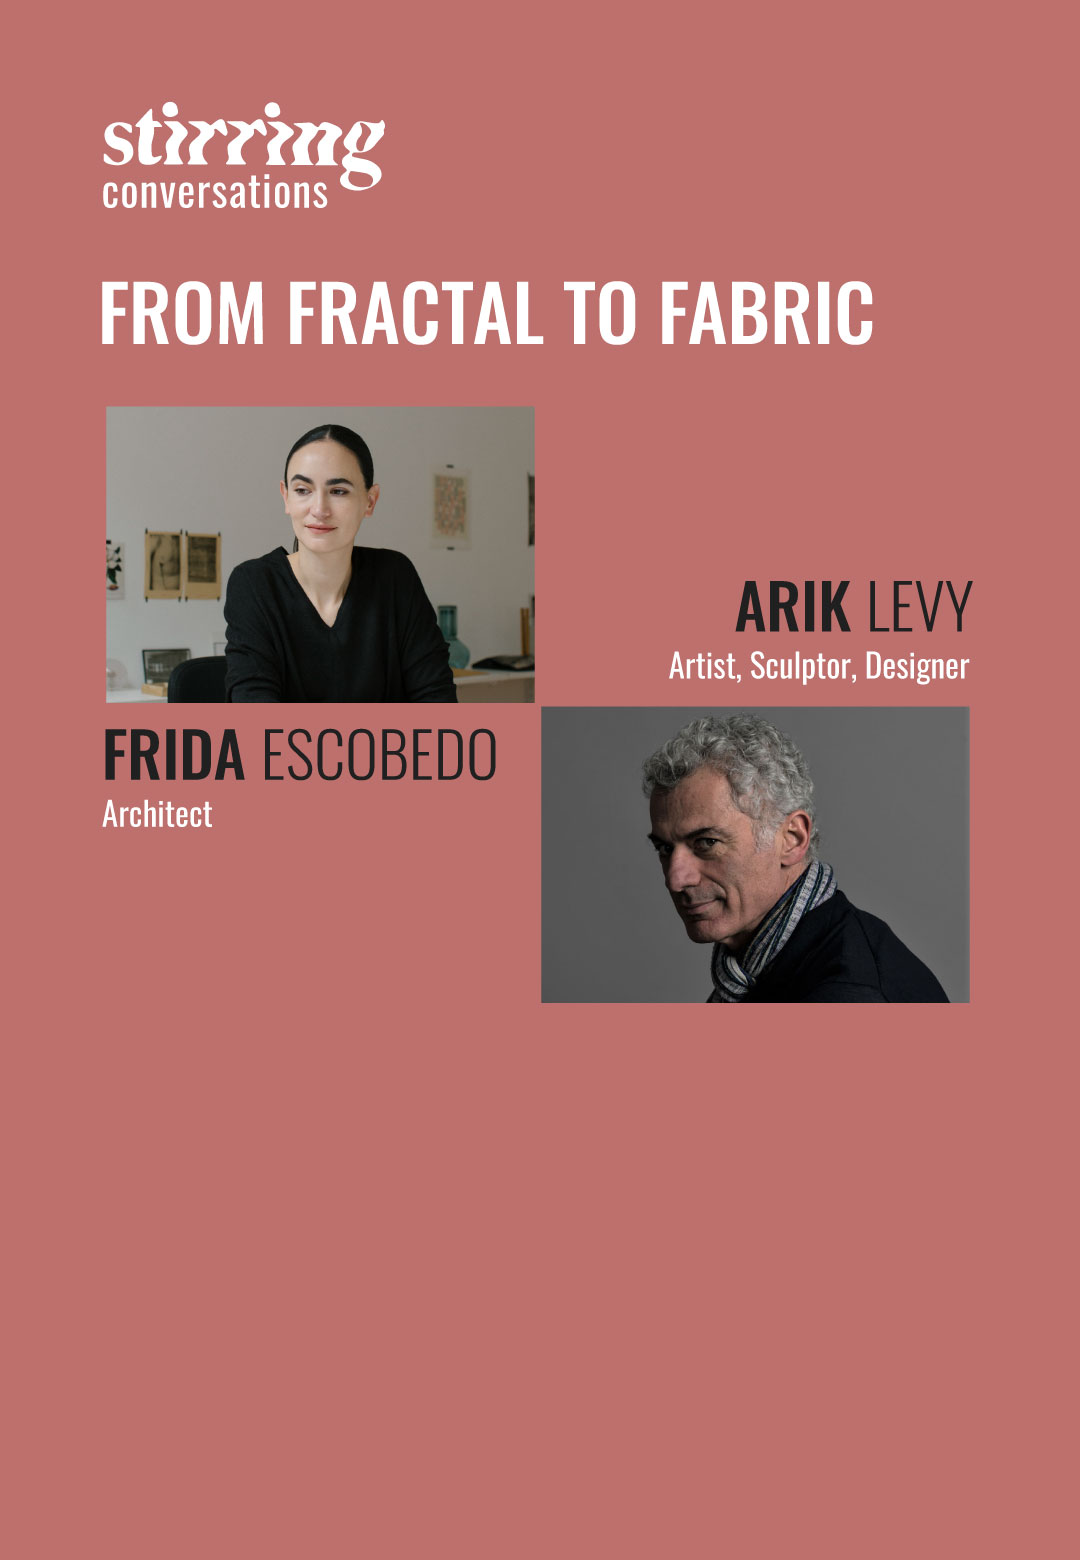 STIRring conversations - Frida Escobedo x Arik Levy: From fractal to fabric | | STIRworld